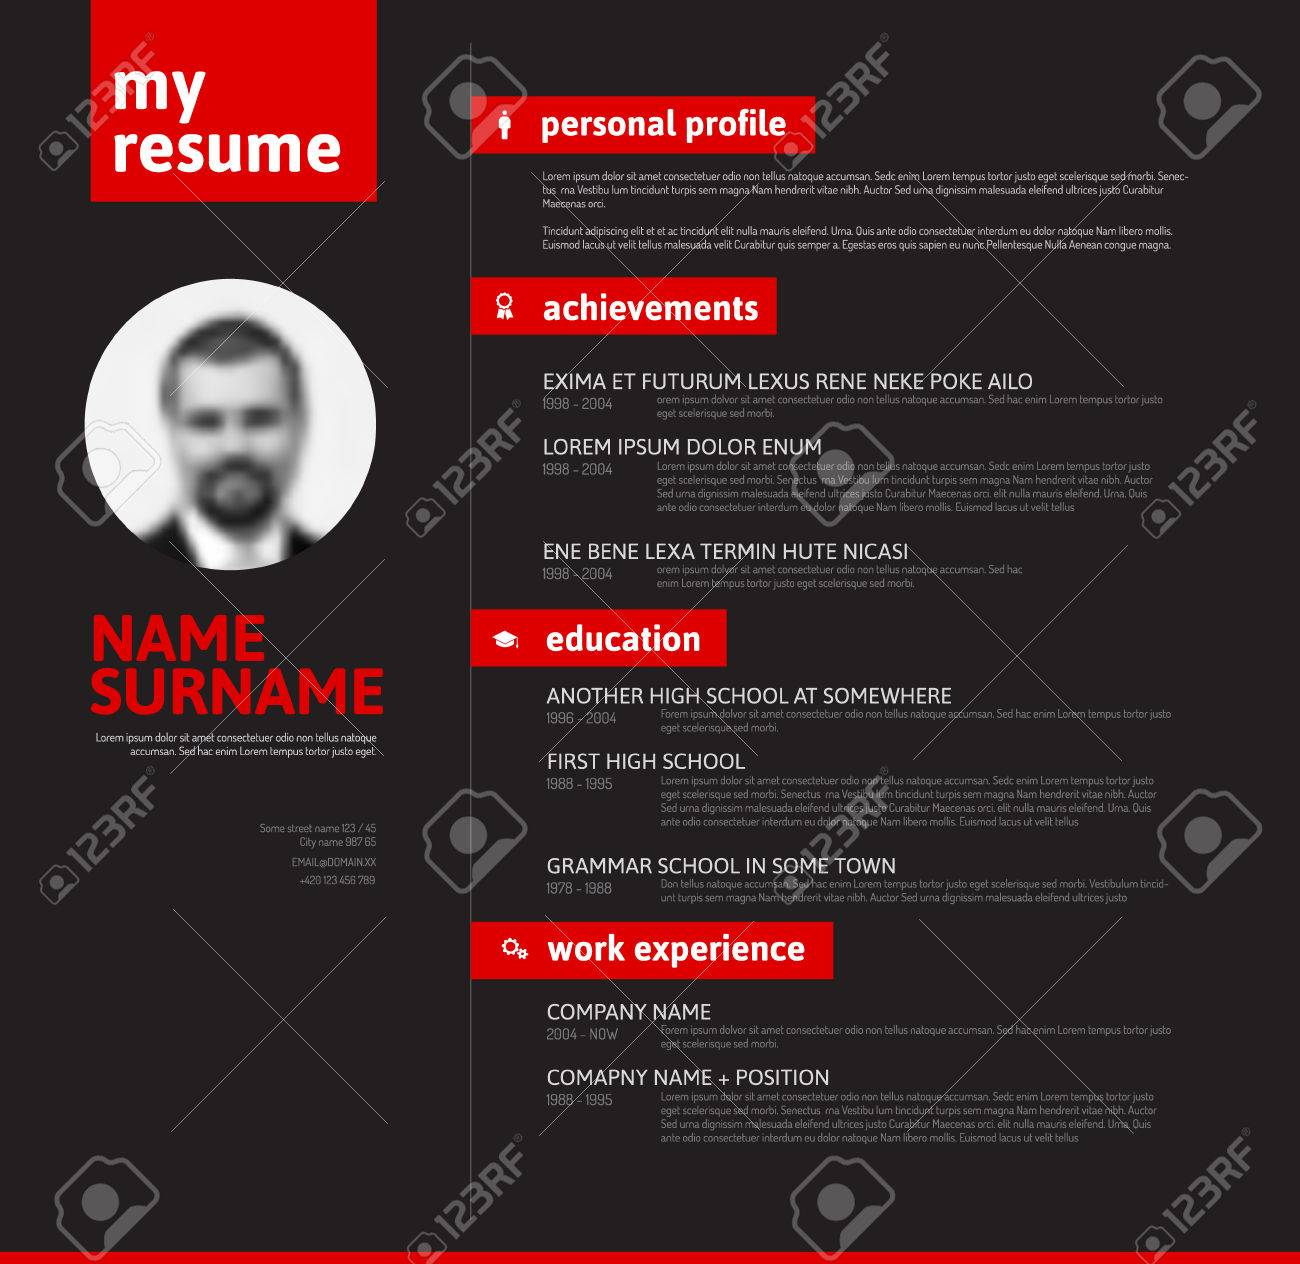 Minimalist Cv / Resume Template With Nice Typography Design   Red And Black  Version Stock Vector